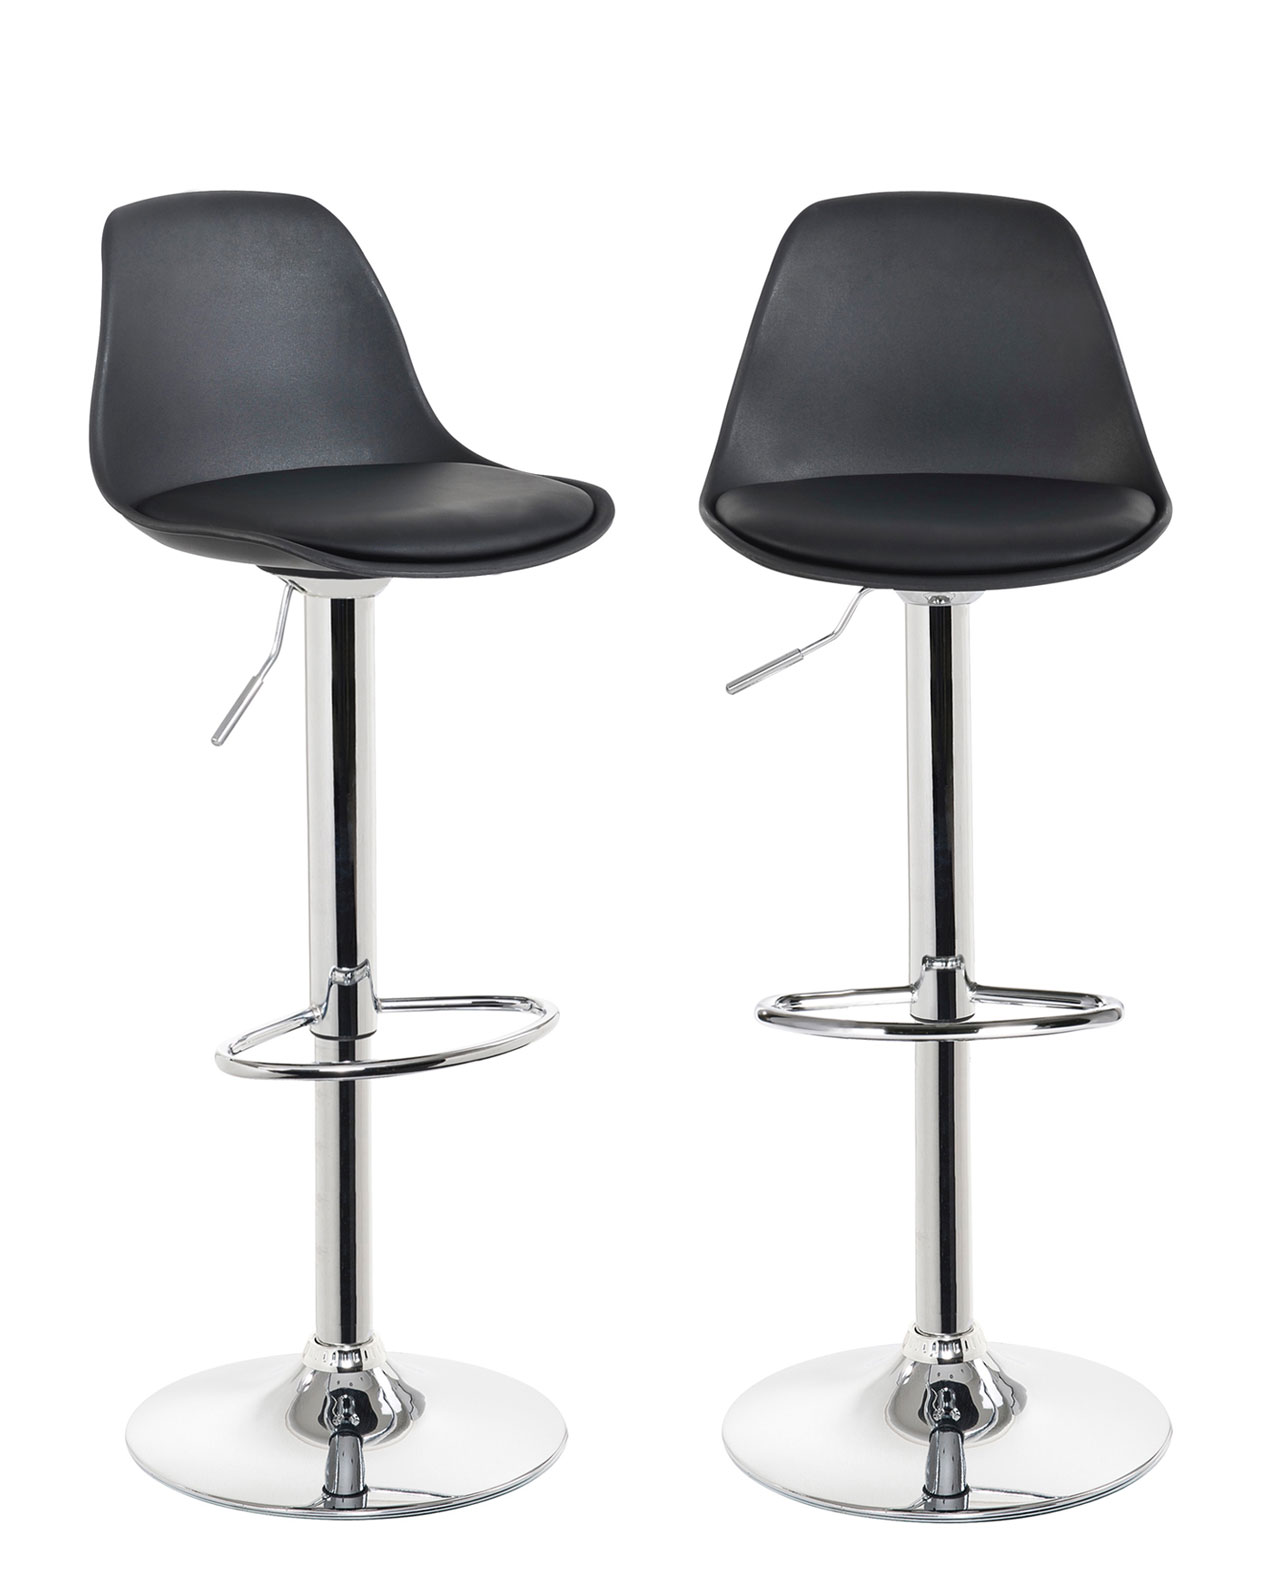 Charly Lot De 2 Tabourets De Bar Blancs Chaises Fauteuils Et Tabourets De Bar Kayelles